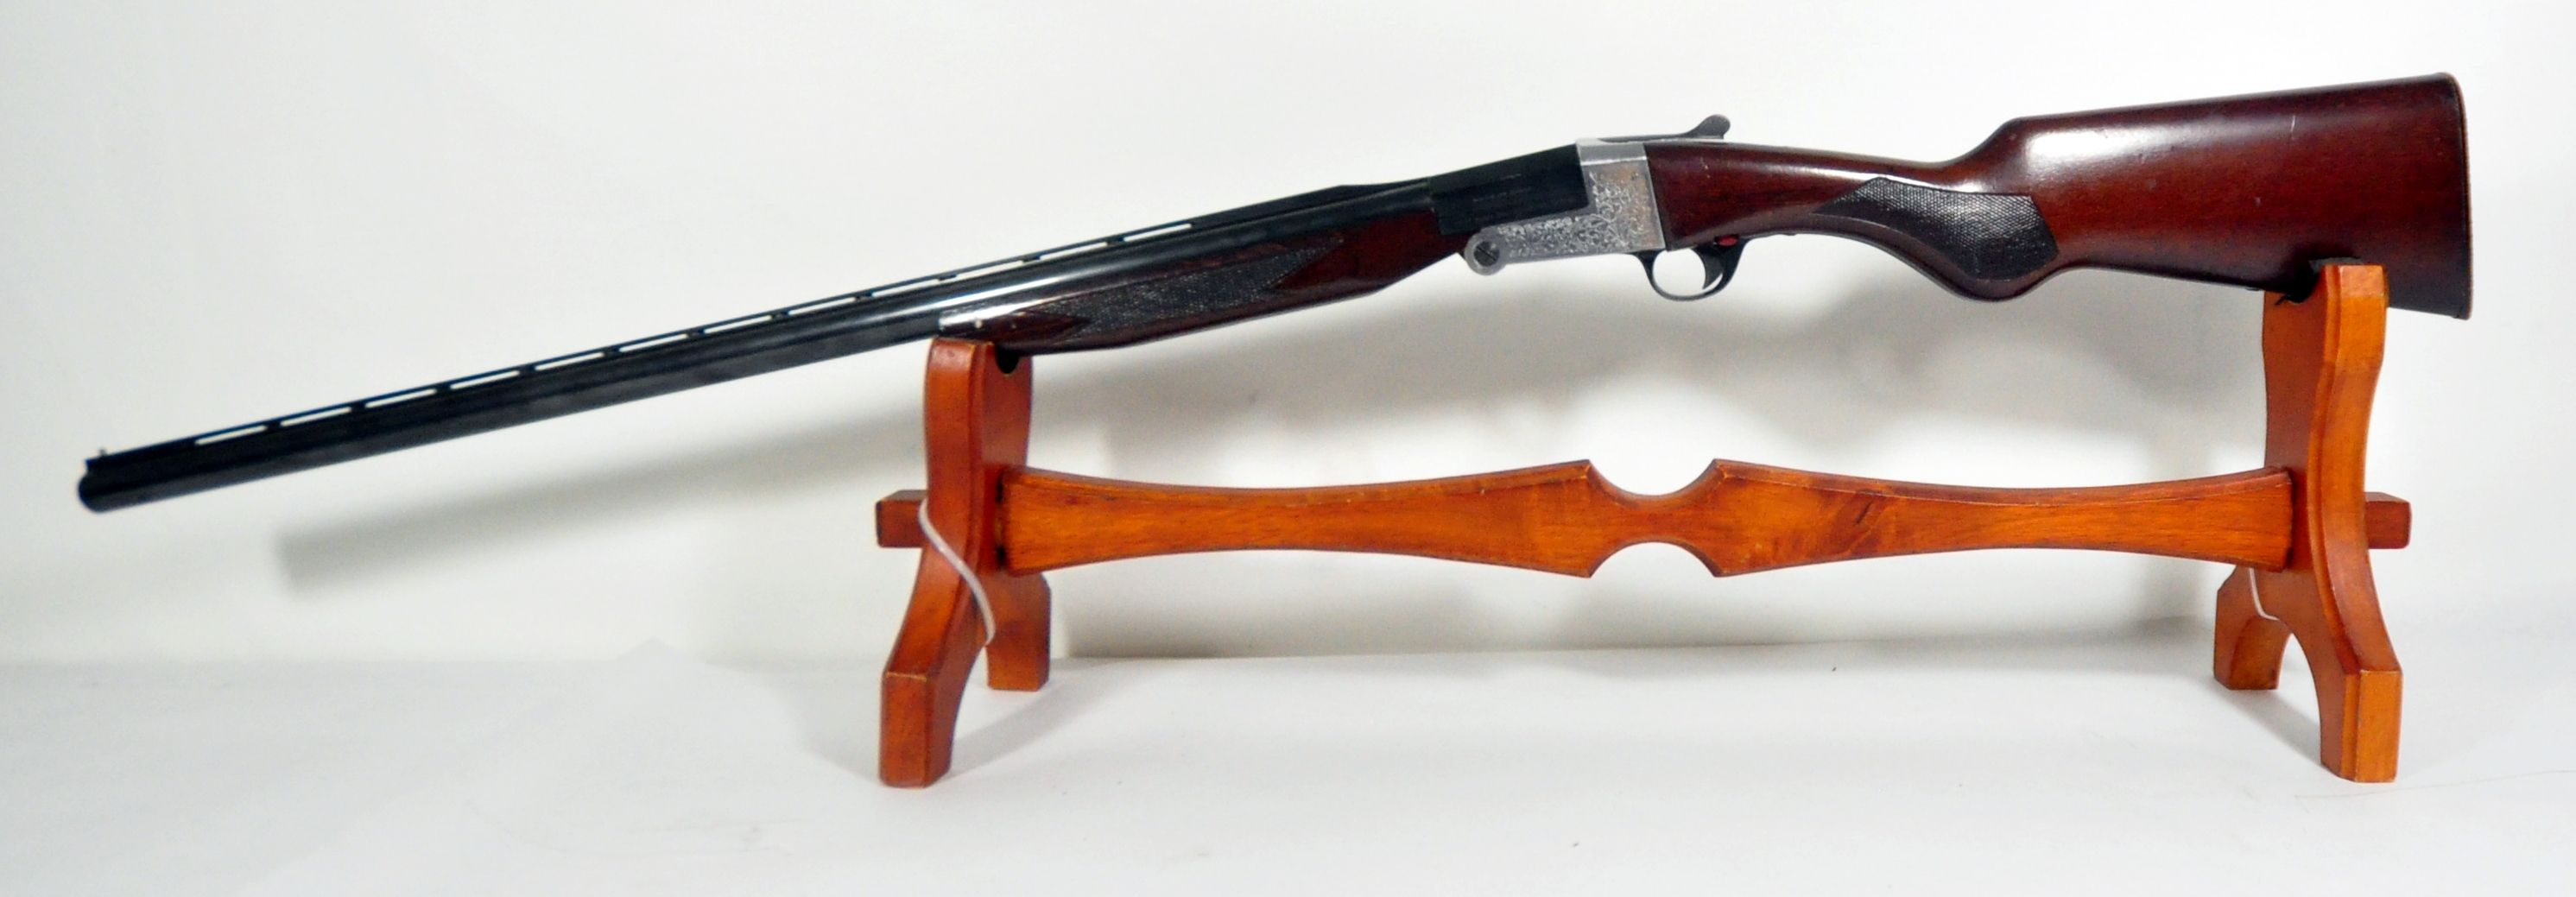 dating italian shotguns Difference in usa beretta and italian made i was just looking at my 92/96 & px4 collection and i noticed that the guns made in italy its the jagged edge at the end of the slide on the usa made berettas.